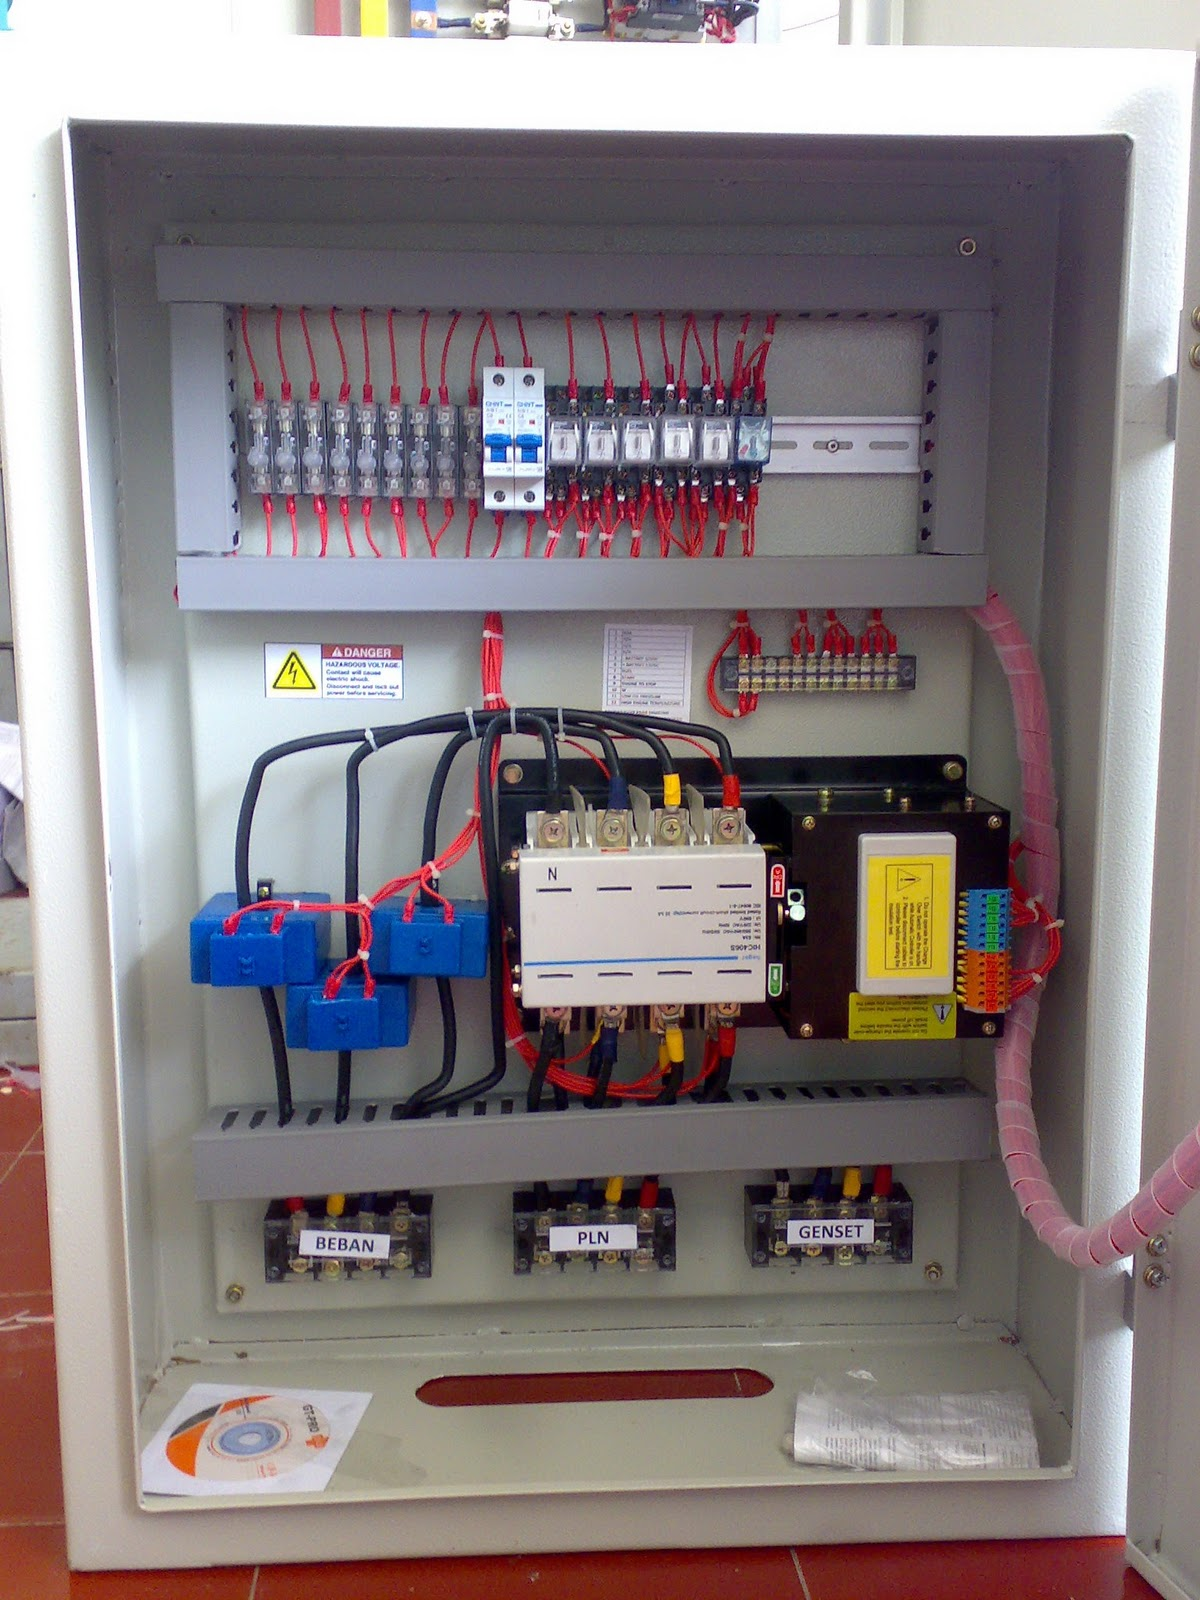 wiring diagram panel ats sederhana data wiring diagram u2022 rh chamaela co Generator Transfer Panel Wiring Diagram Control Panel Wiring Diagram